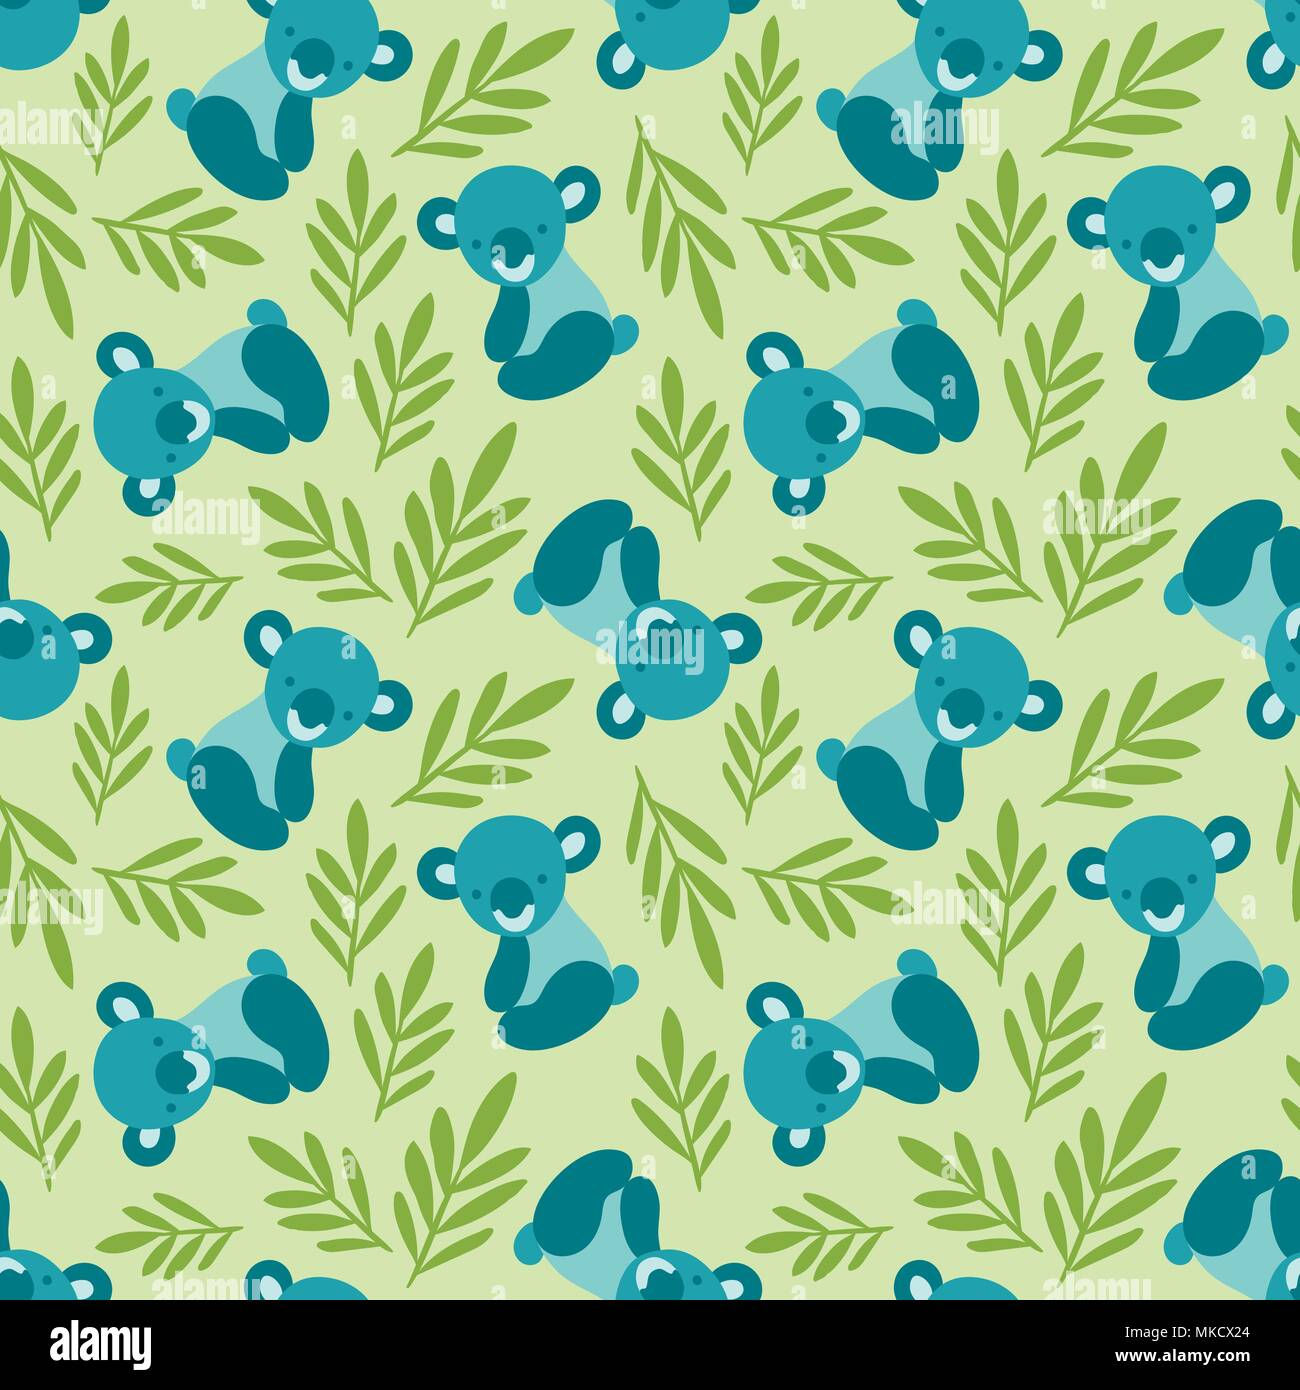 seamless pattern with cute koala bears and leaves repeating